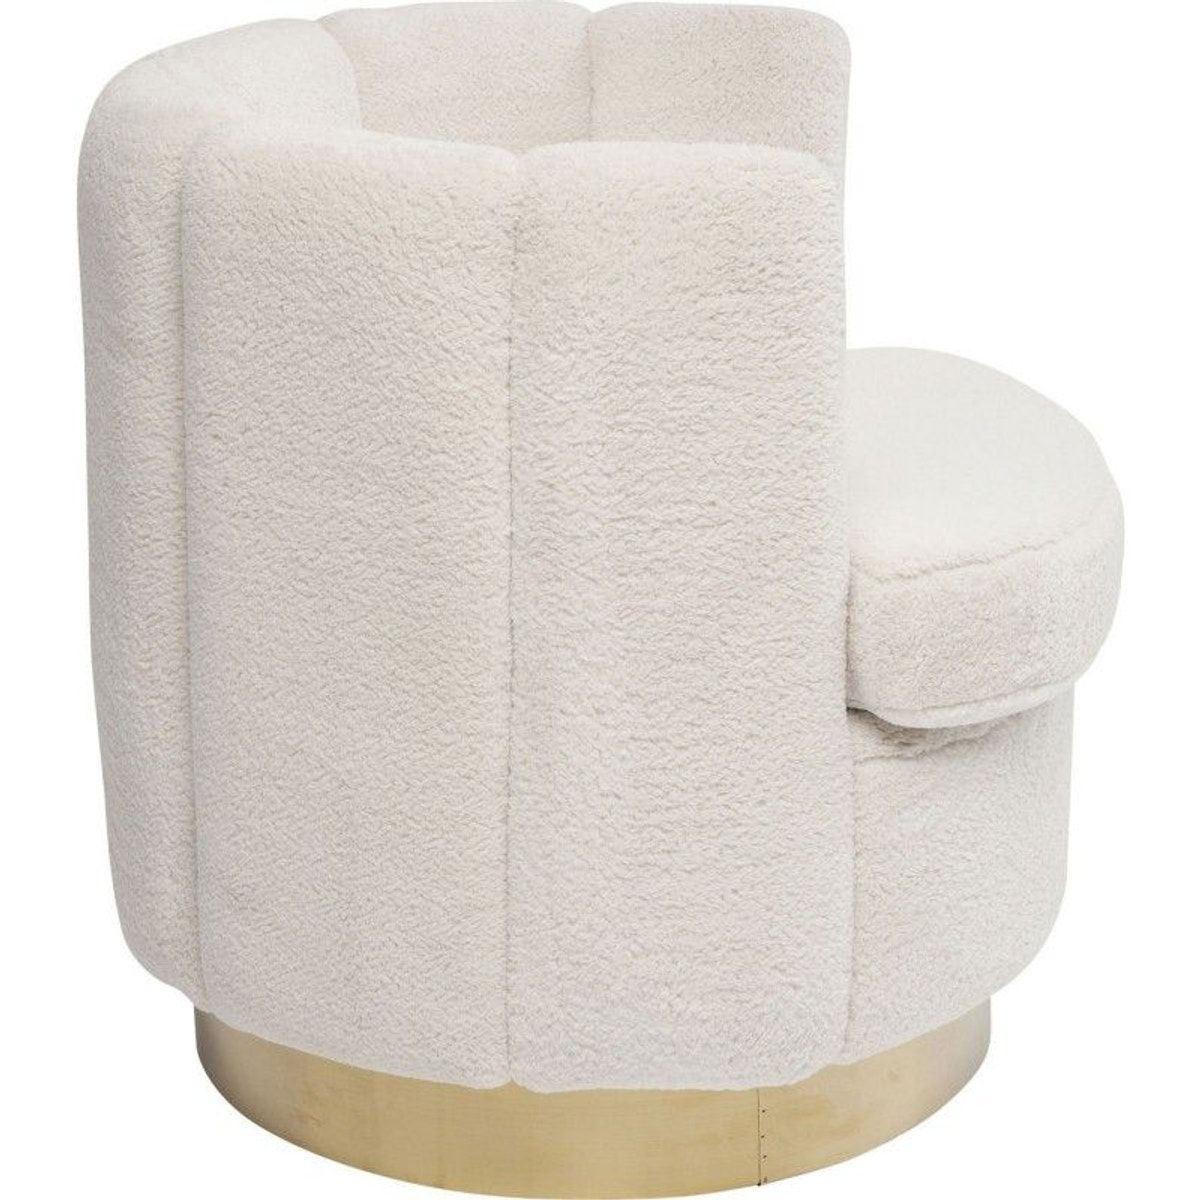 Fauteuil Silhouette Fourrure Blanche Taille Fauteuil Fourrure Blanche Peau De Mouton Et Fourrure